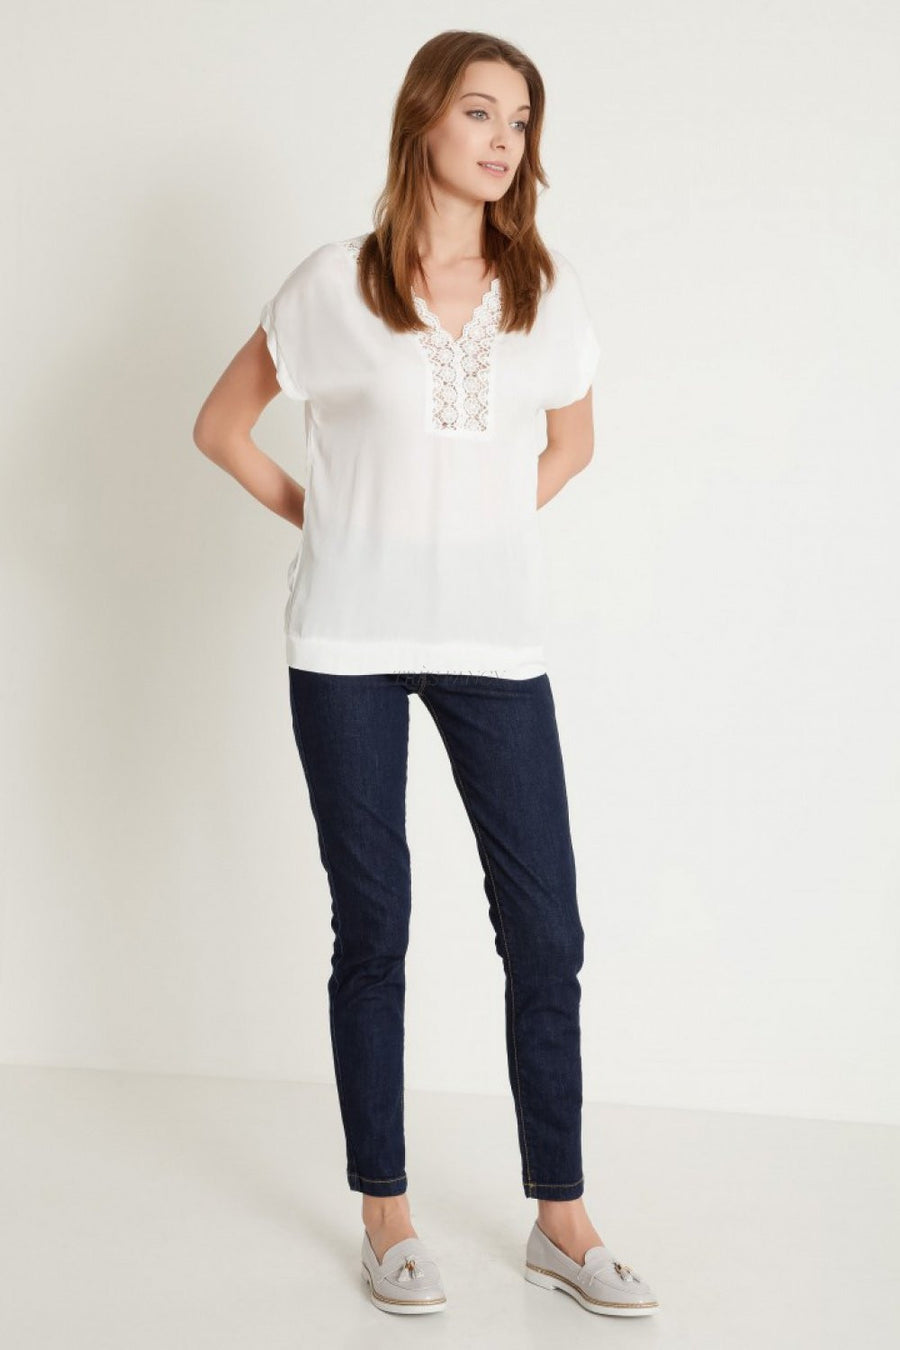 Blouse 77922 Greenpoint-Women`s Blouses & Tunics-Greenpoint-white-36-TRESFANCY